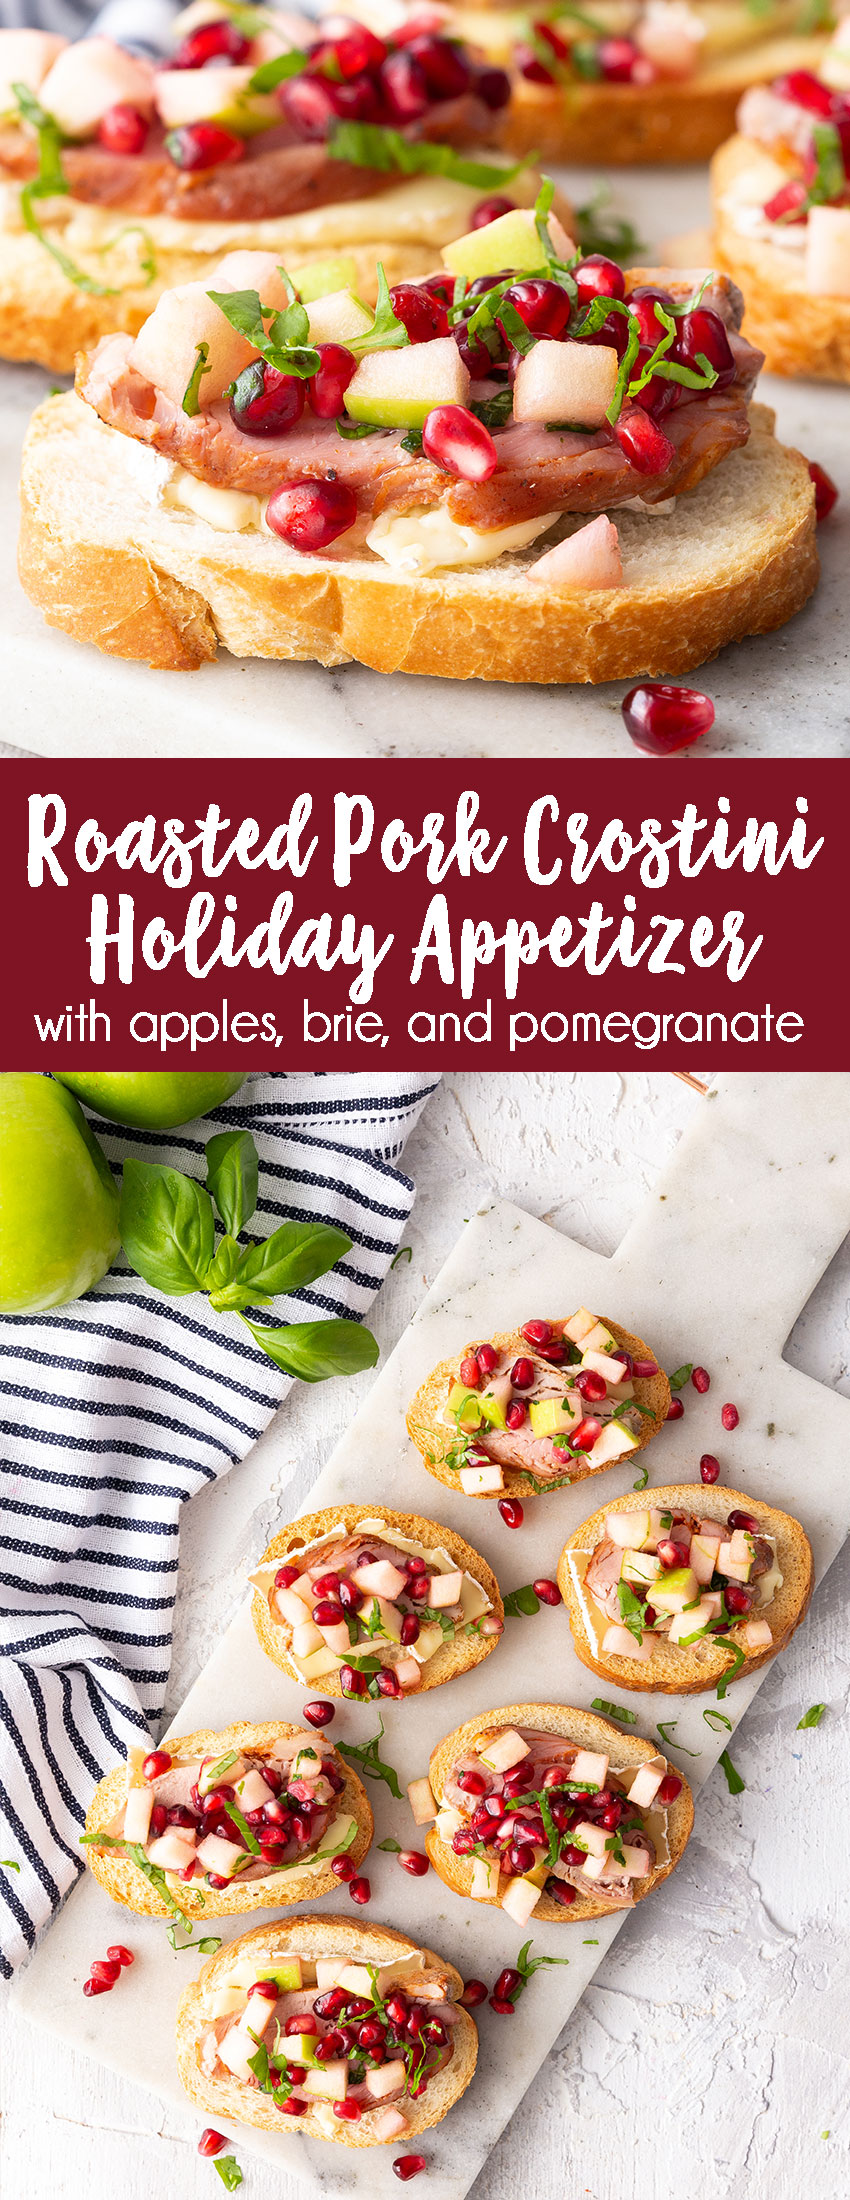 Roasted Pork Crostini Holiday Appetizer with green apple, pomegranate, and brie